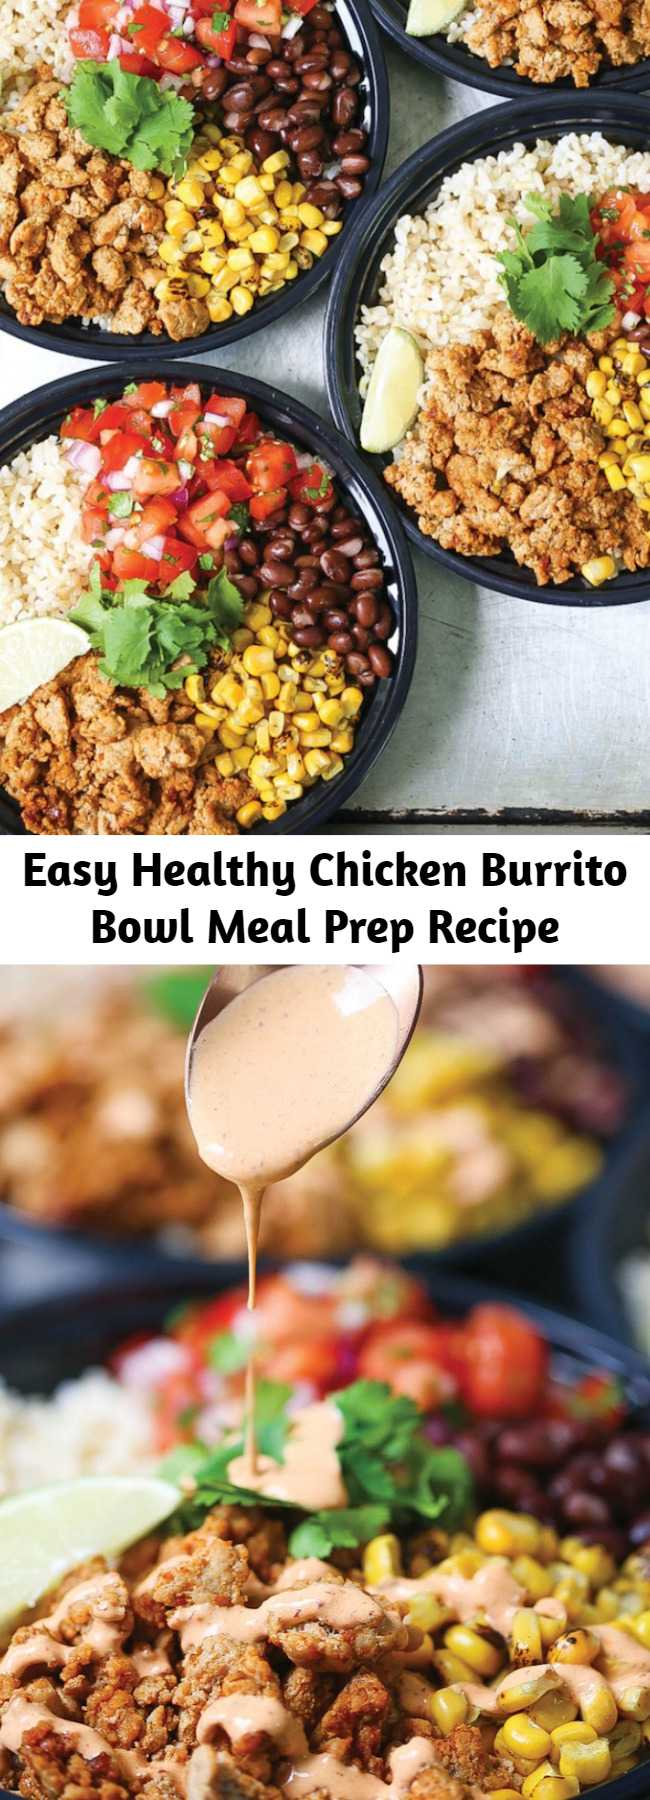 Easy Healthy Chicken Burrito Bowl Meal Prep Recipe - Think of this as healthier (and cheaper!) Chipotle bowls that you can have all week long. Save time and calories here!!!